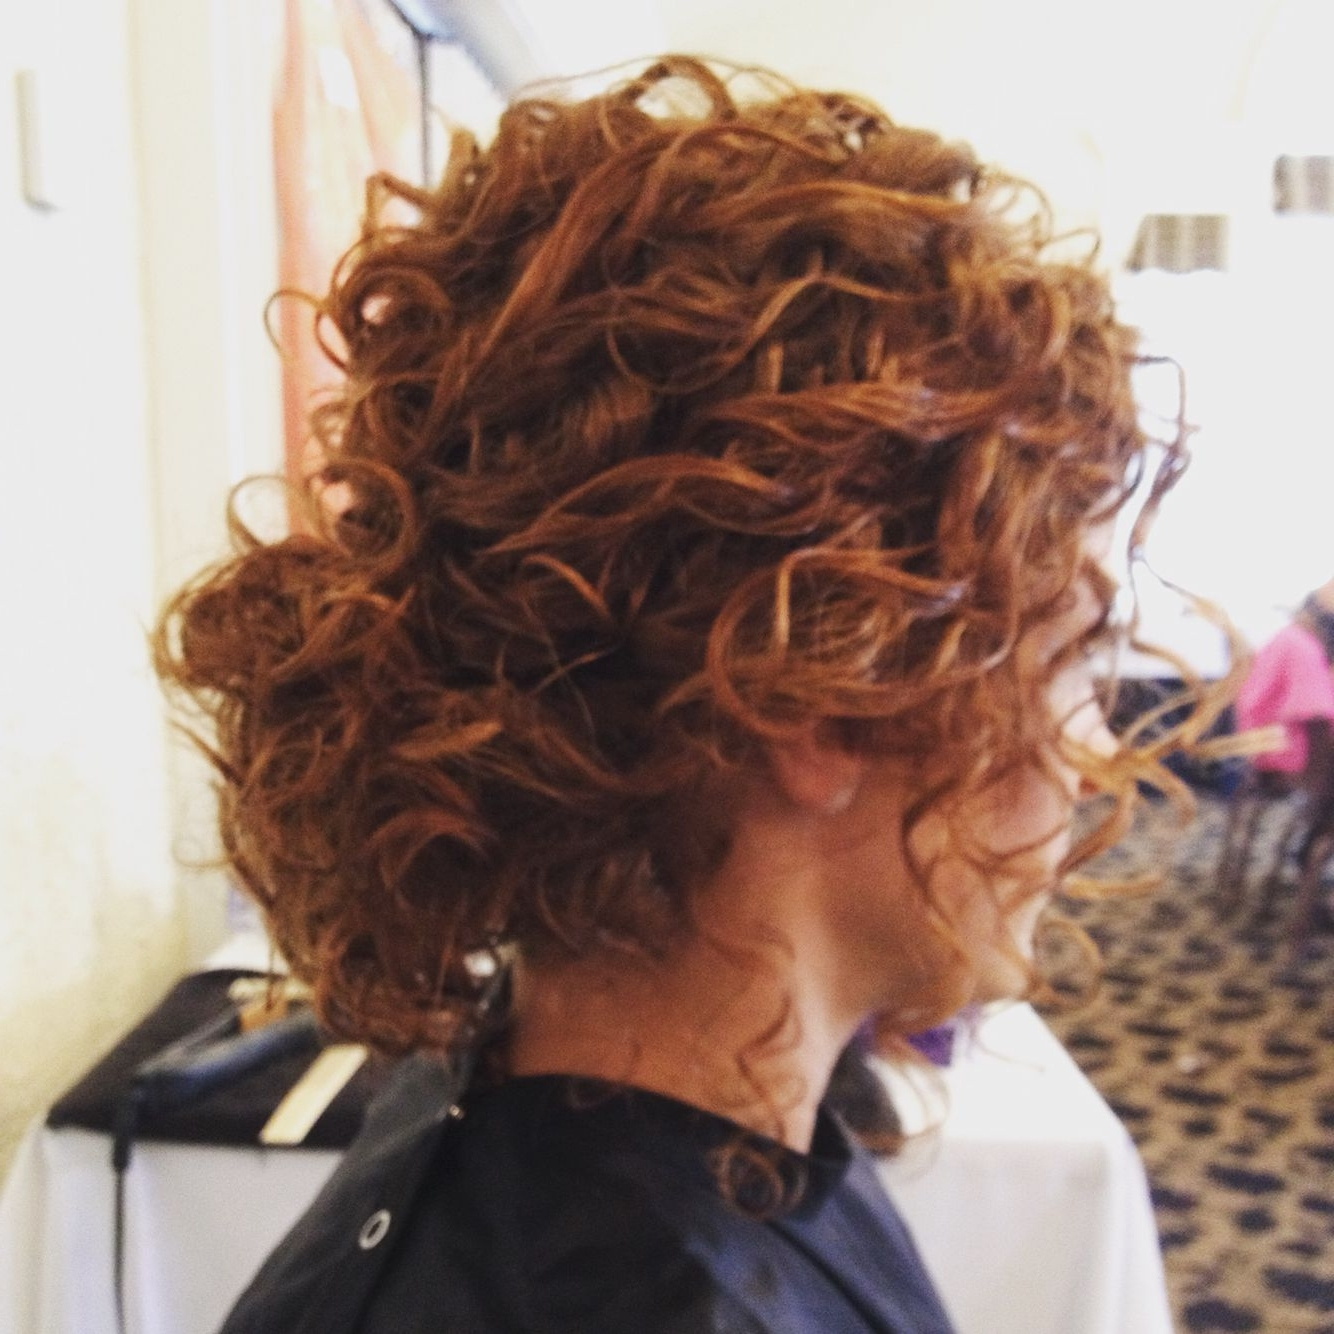 Naturally Curly Hair Low Bun Updo | Hair | Pinterest | Low Bun Updo Within Hair Updos For Curly Hair (View 10 of 15)